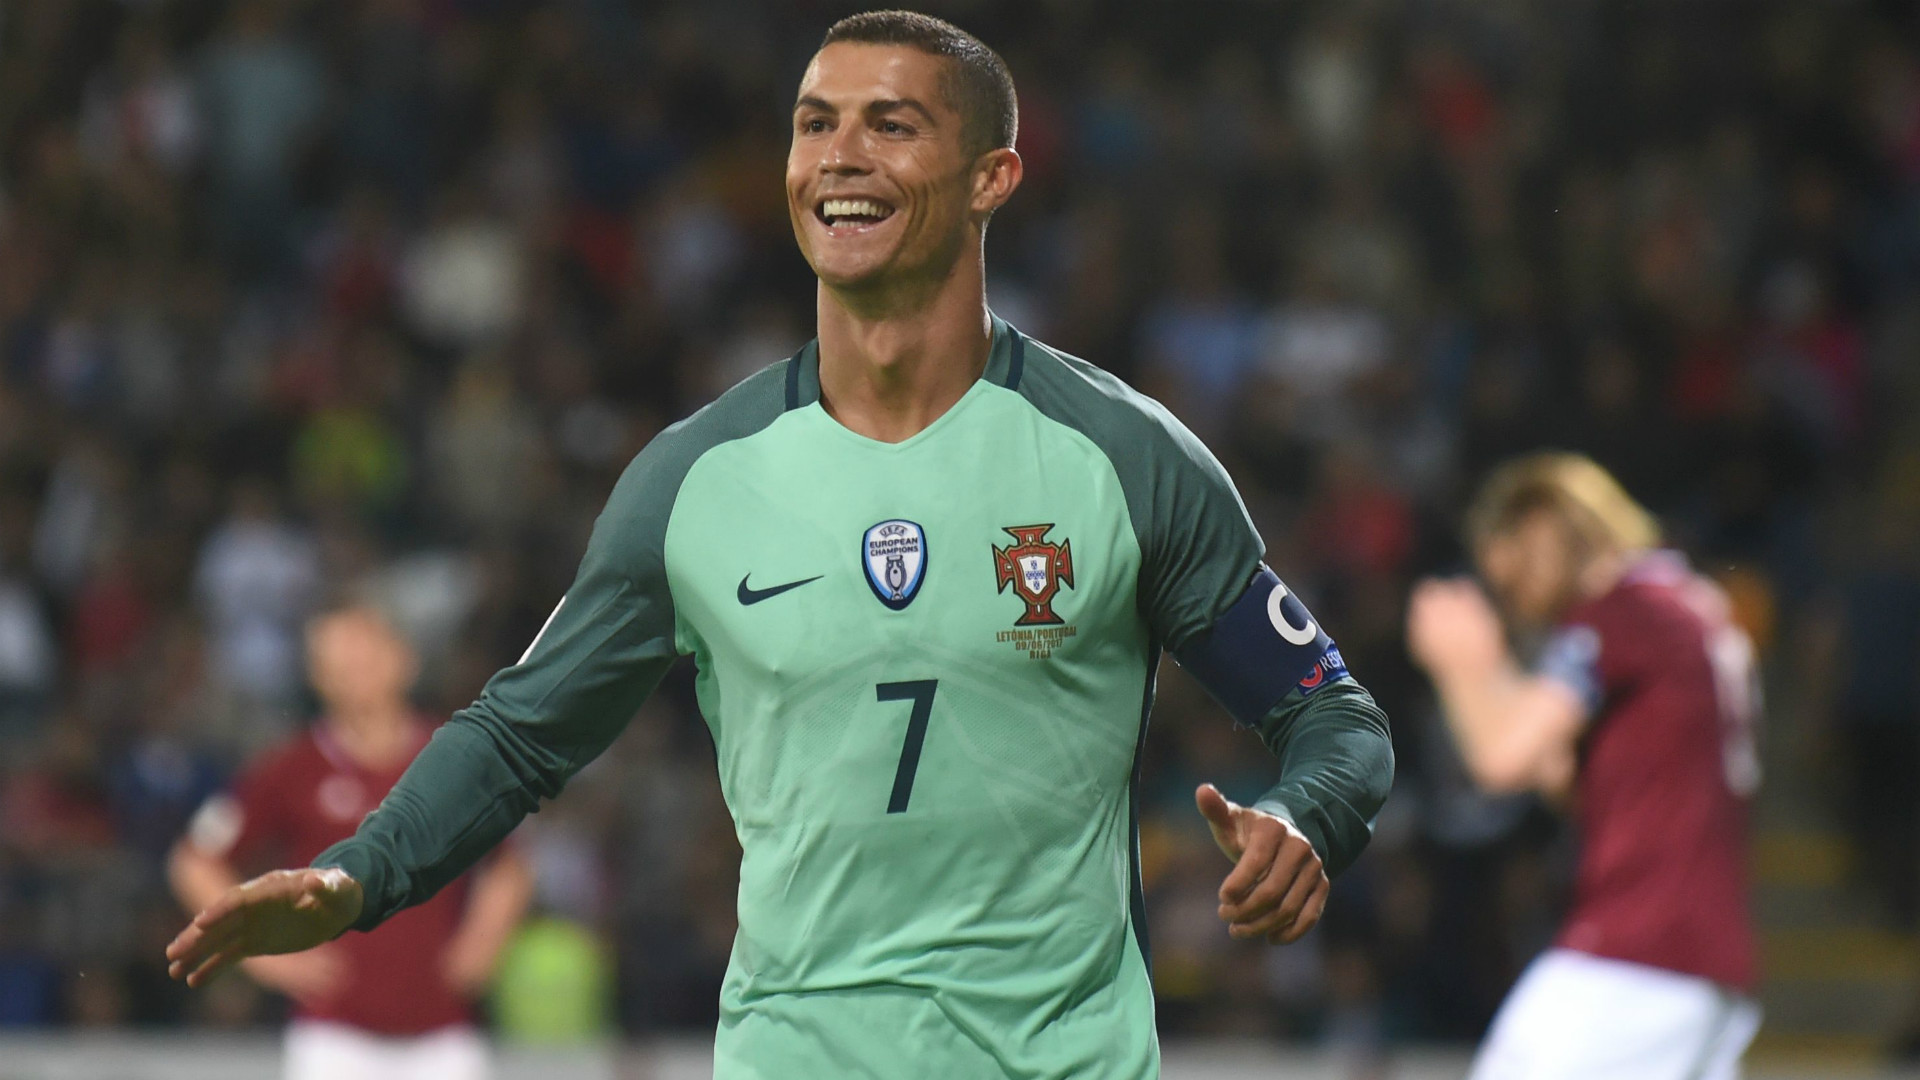 https://images.performgroup.com/di/library/GOAL/33/56/cristiano-ronaldo-portugal_zb4lb924rk0w10nq85g91zz44.jpg